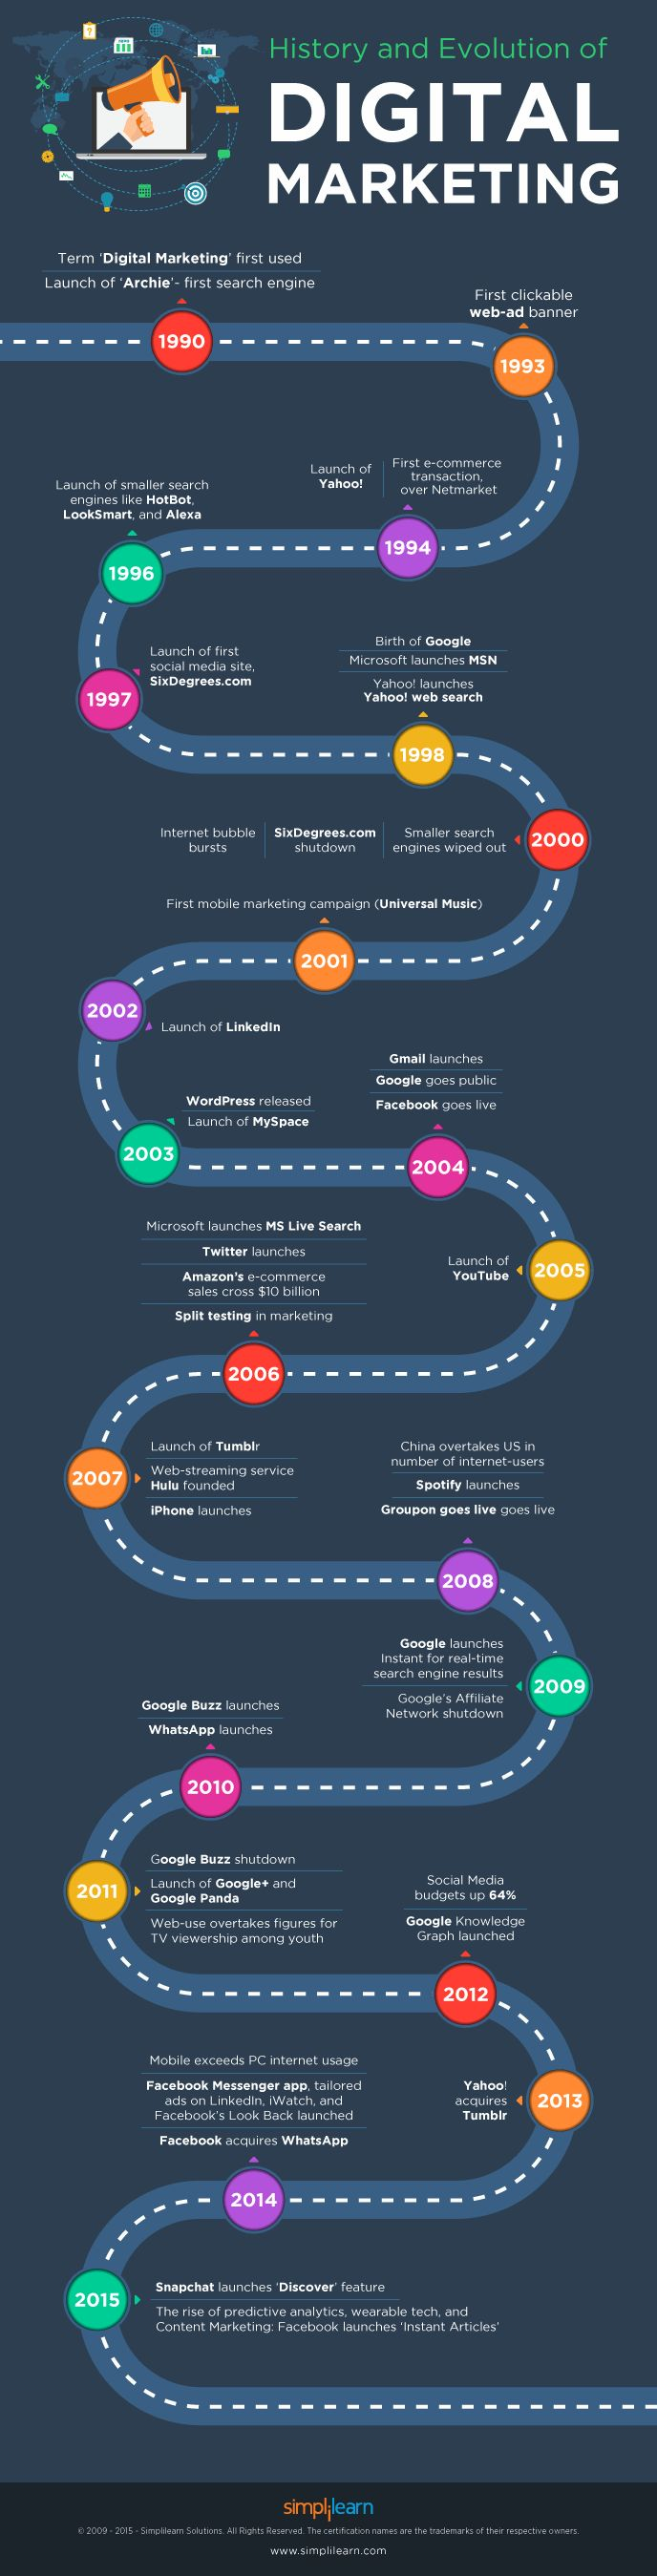 Digital Marketing: Change with time #Infographic #DigitalMarketing #History